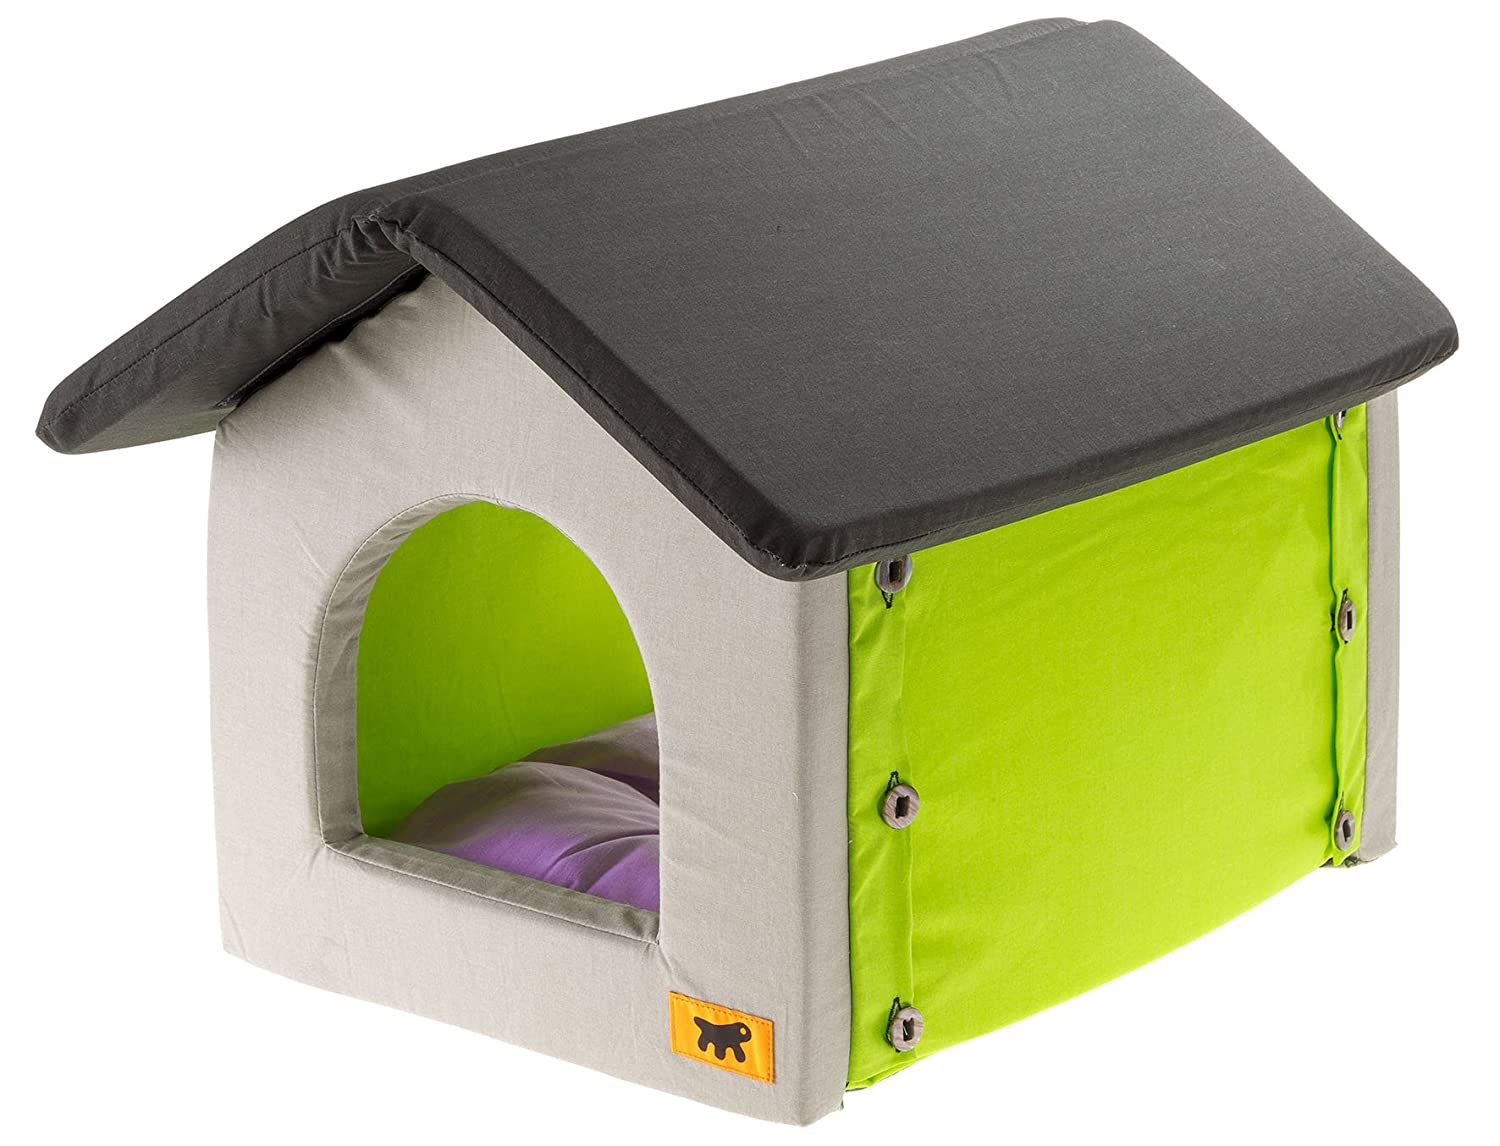 Ferplast Casetta Cat Bed, 36 x 46 x 40 cm